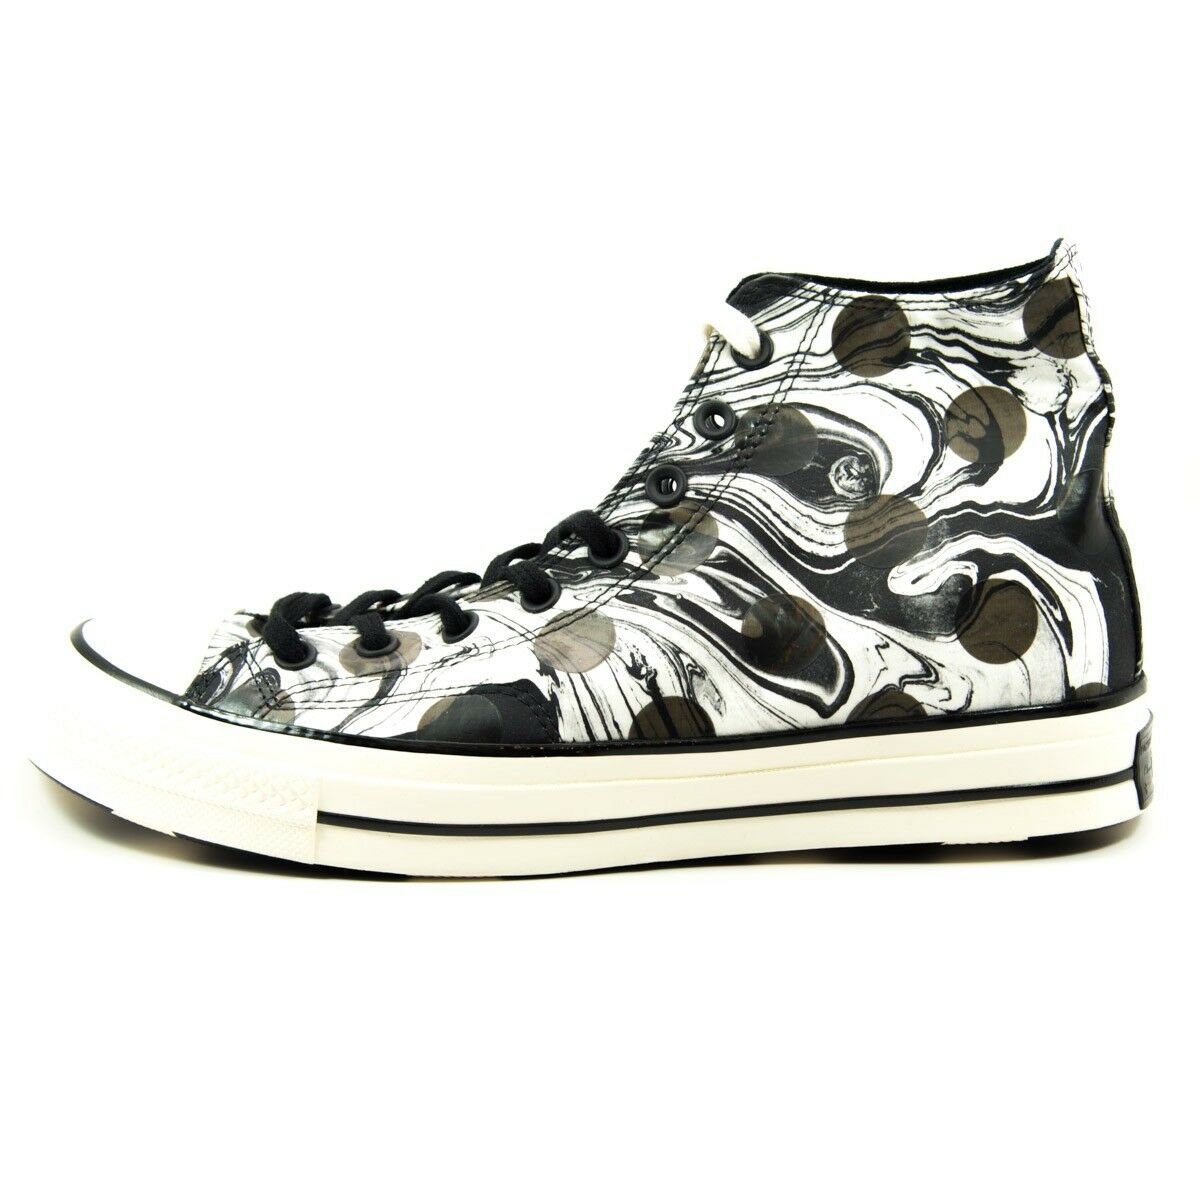 90 Uomo CONVERSE CHUCK TAYLOR CTAS 70 LIMITED HIGH SIZE 10 NEW 155011C